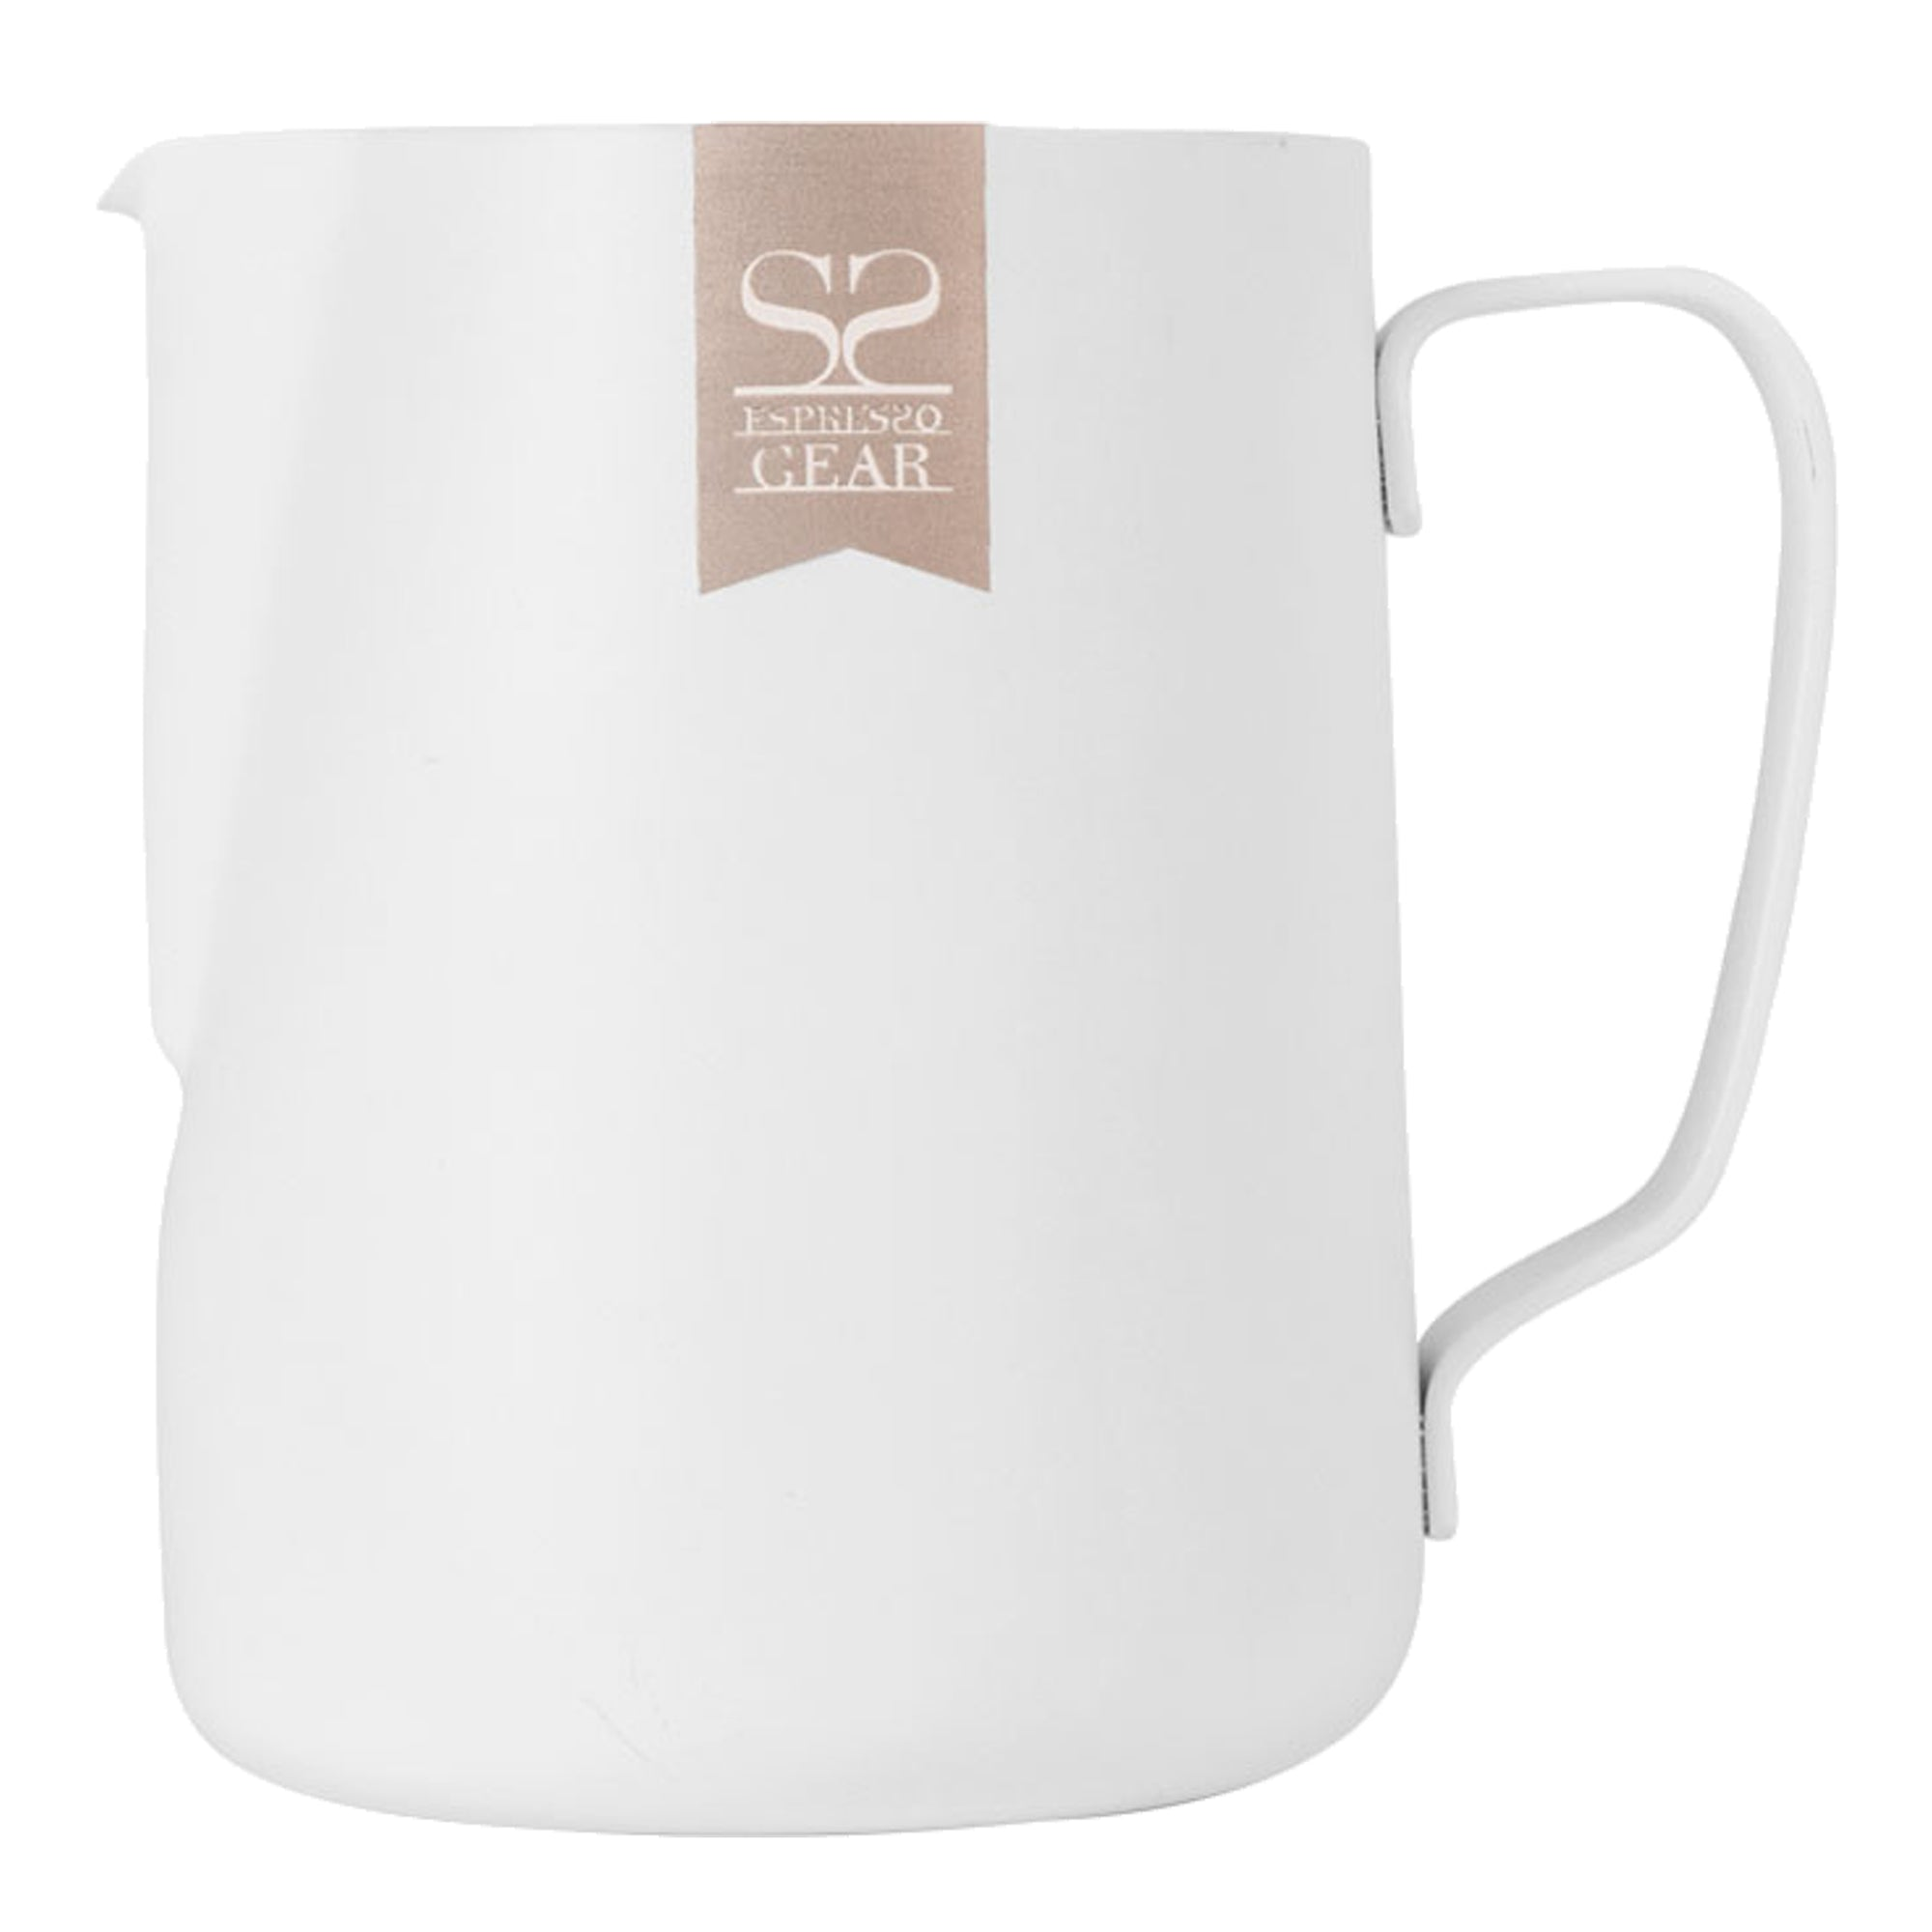 Pitcher White 600ml - Espresso Gear - Espresso Gear